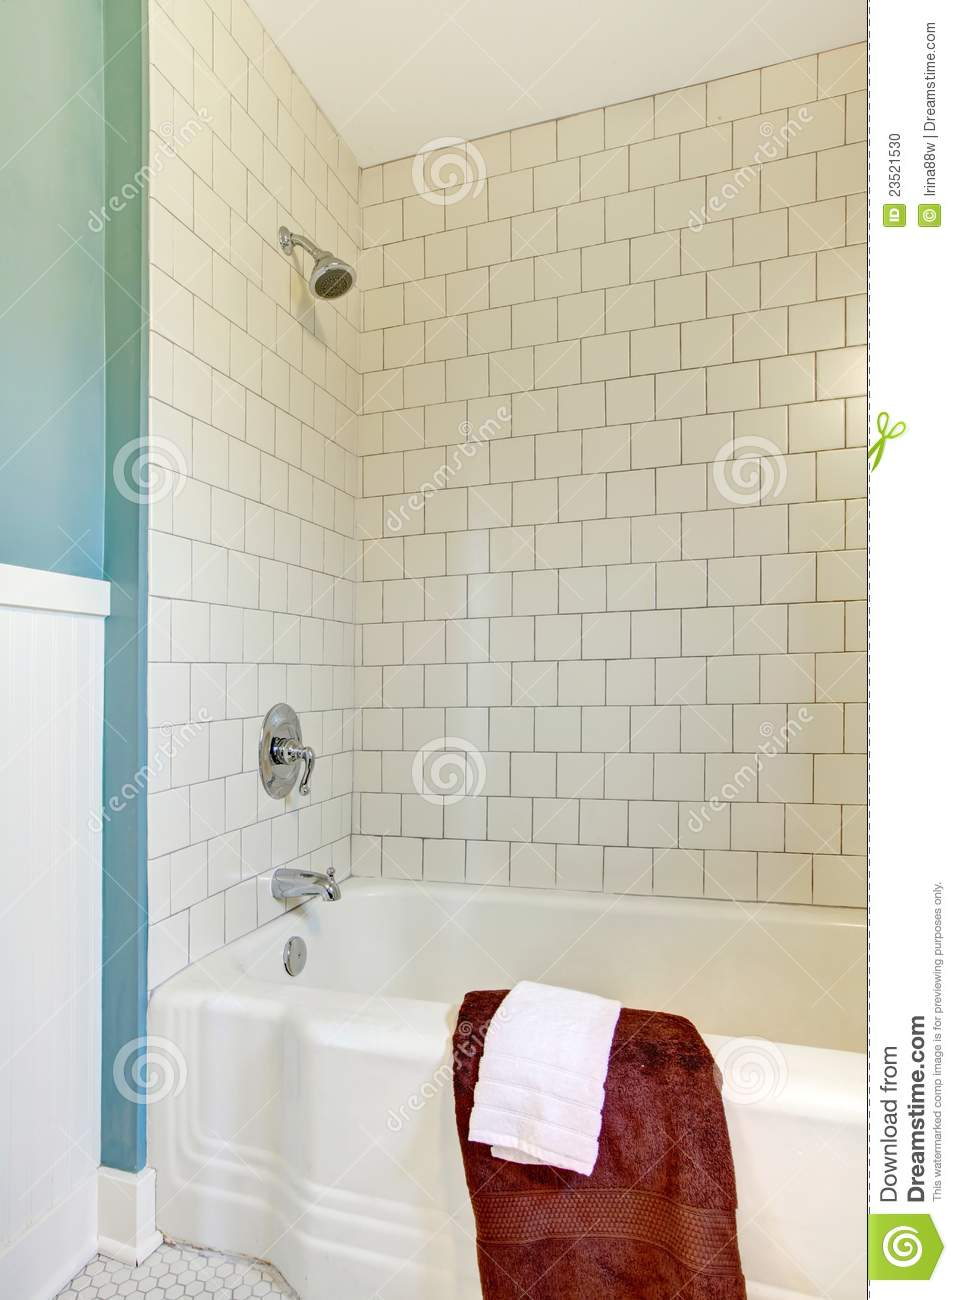 Good Bathroom Ideas Grout Mistakes And Installed Bathroom Tile ...